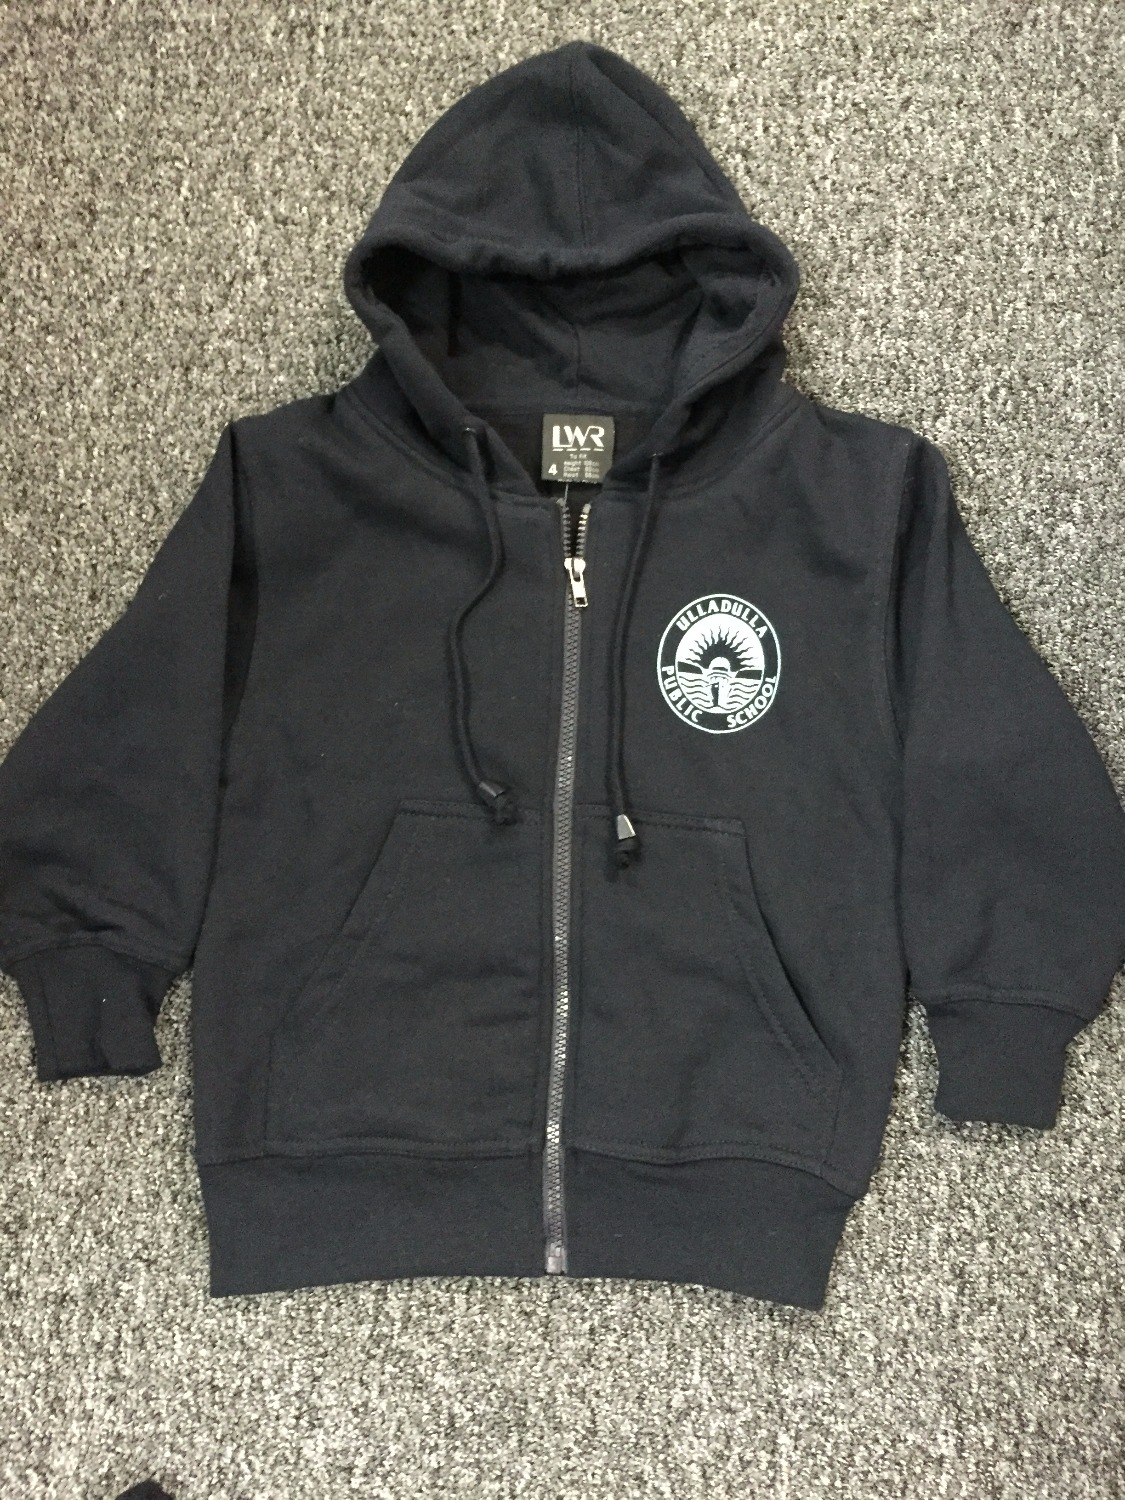 LWR logo fleecy hooded jacket